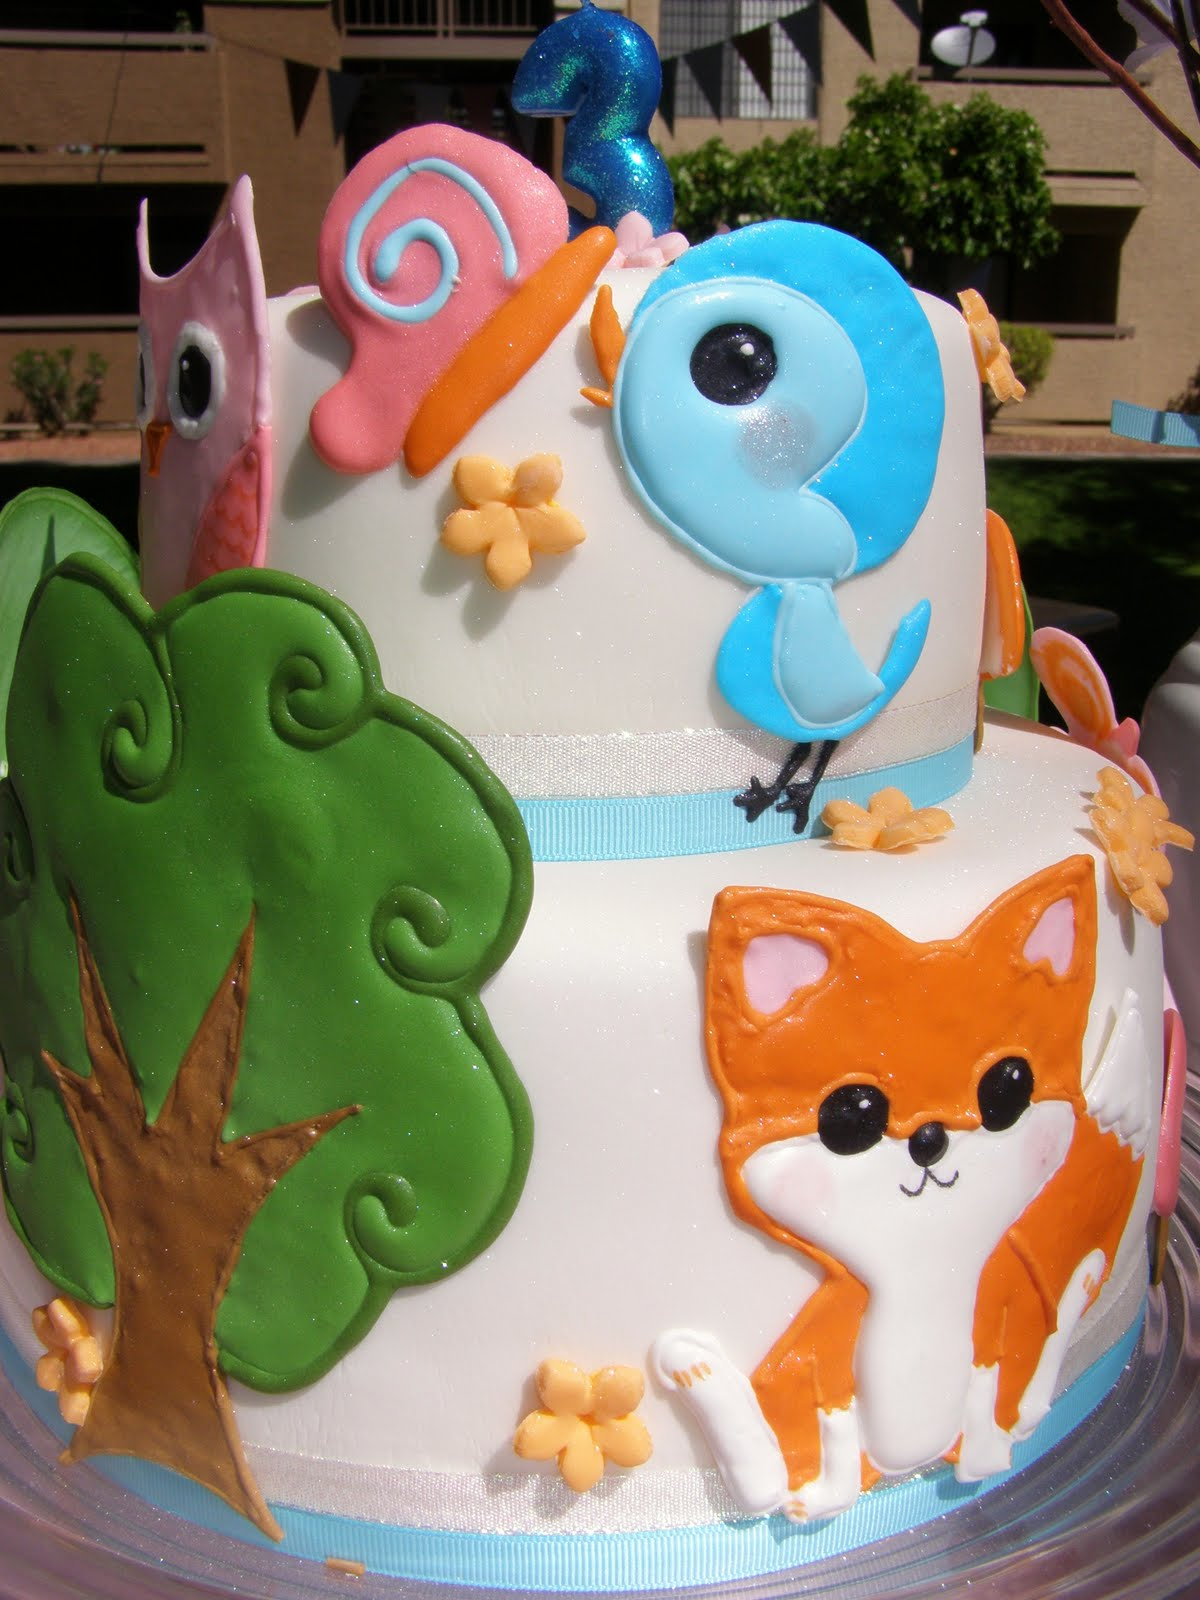 Sweet and Pretty Cakes: Norah- Woodland Animals